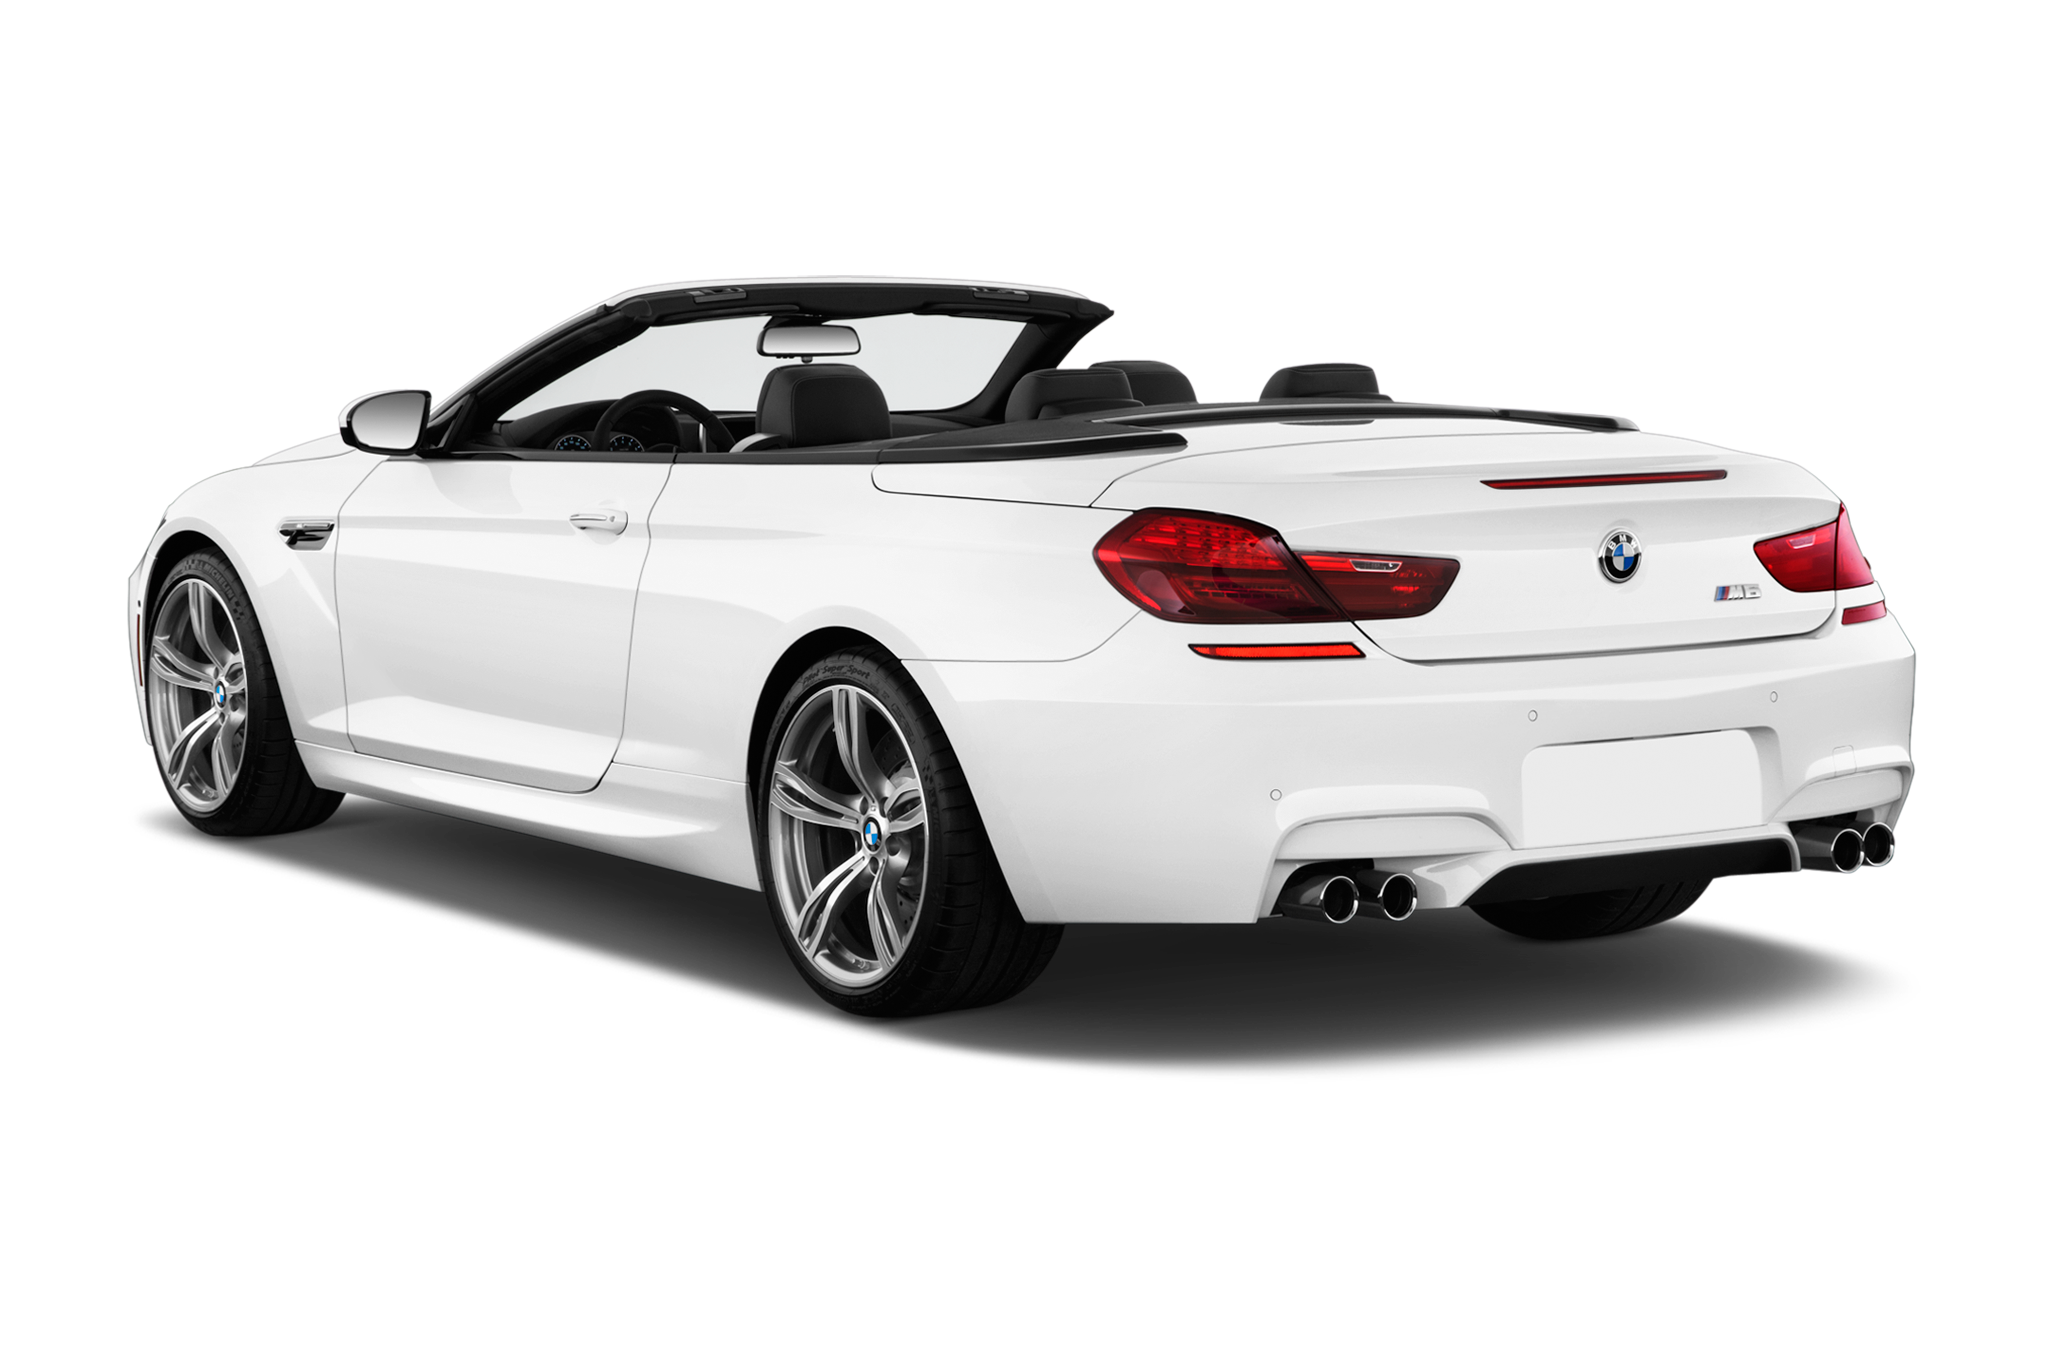 Bmw M6 Convertible 2016 International Price Overview